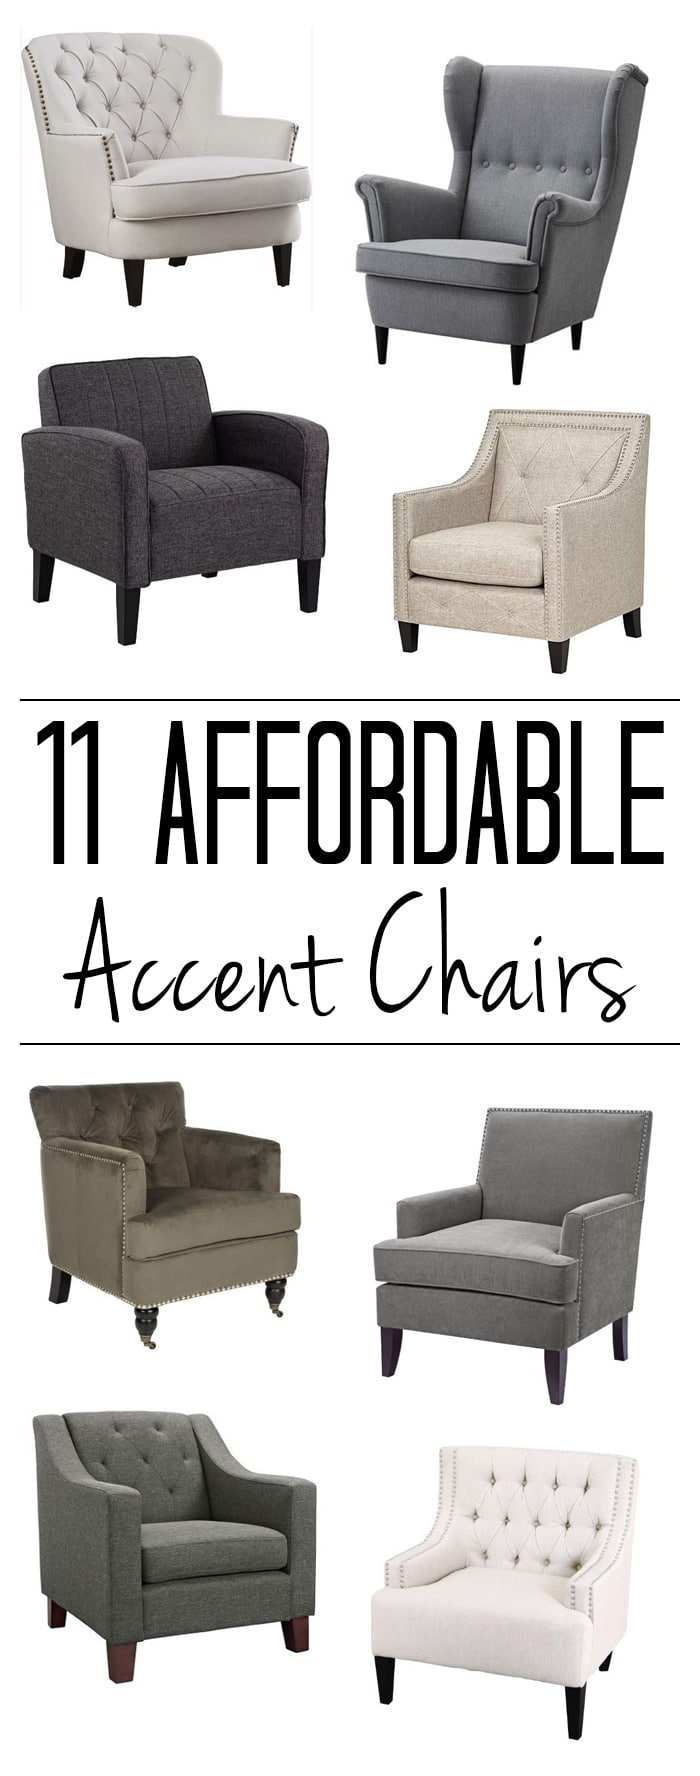 11 Accent Chairs Under $350 - Polished Habitat